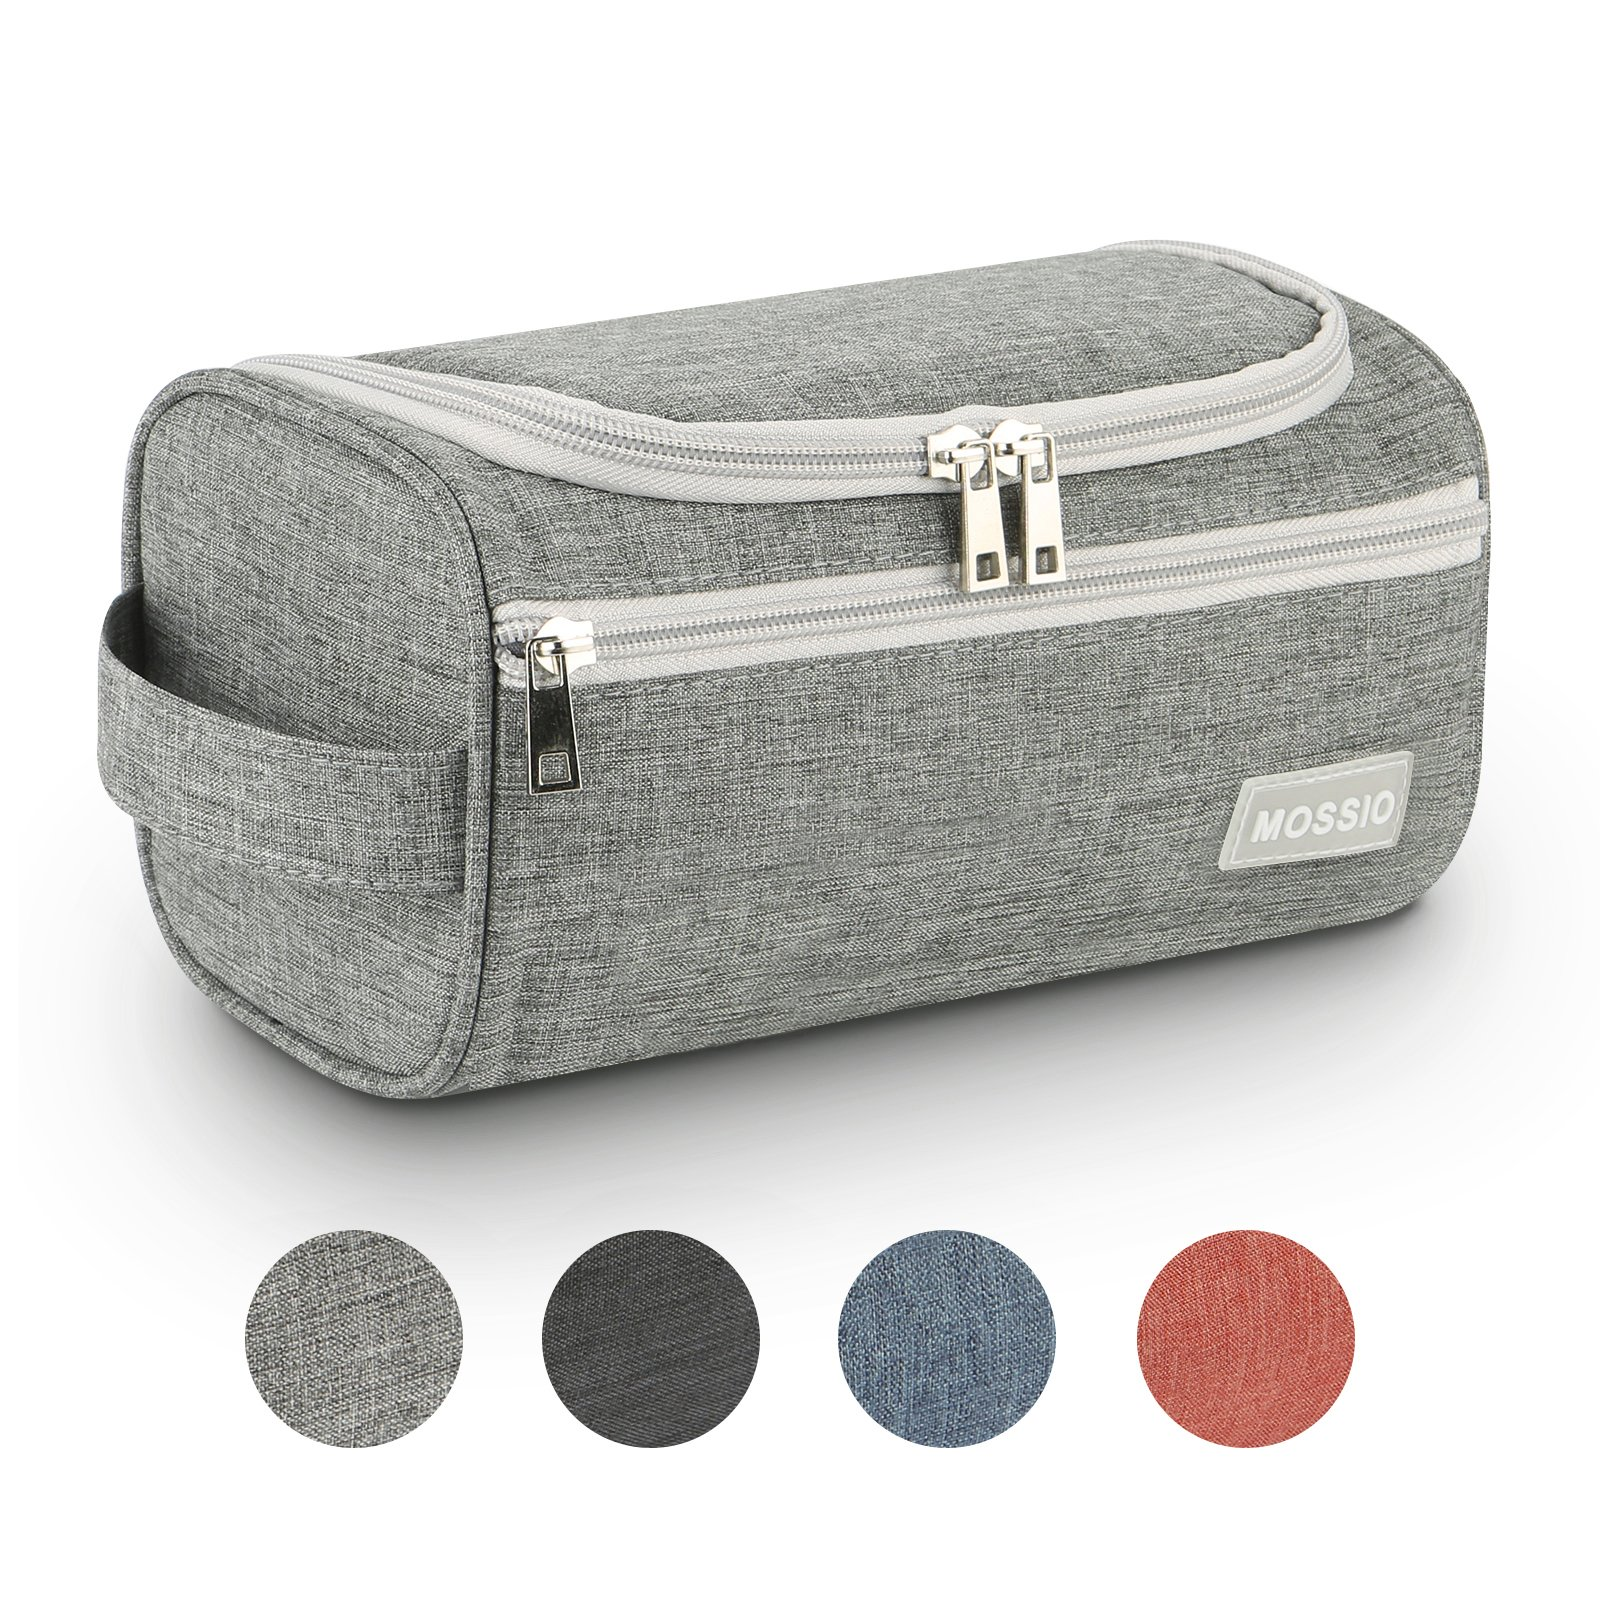 Dopp Kit,Mossio Women Men Business Travel Accessories with Sturdy Hanging Hook Grey